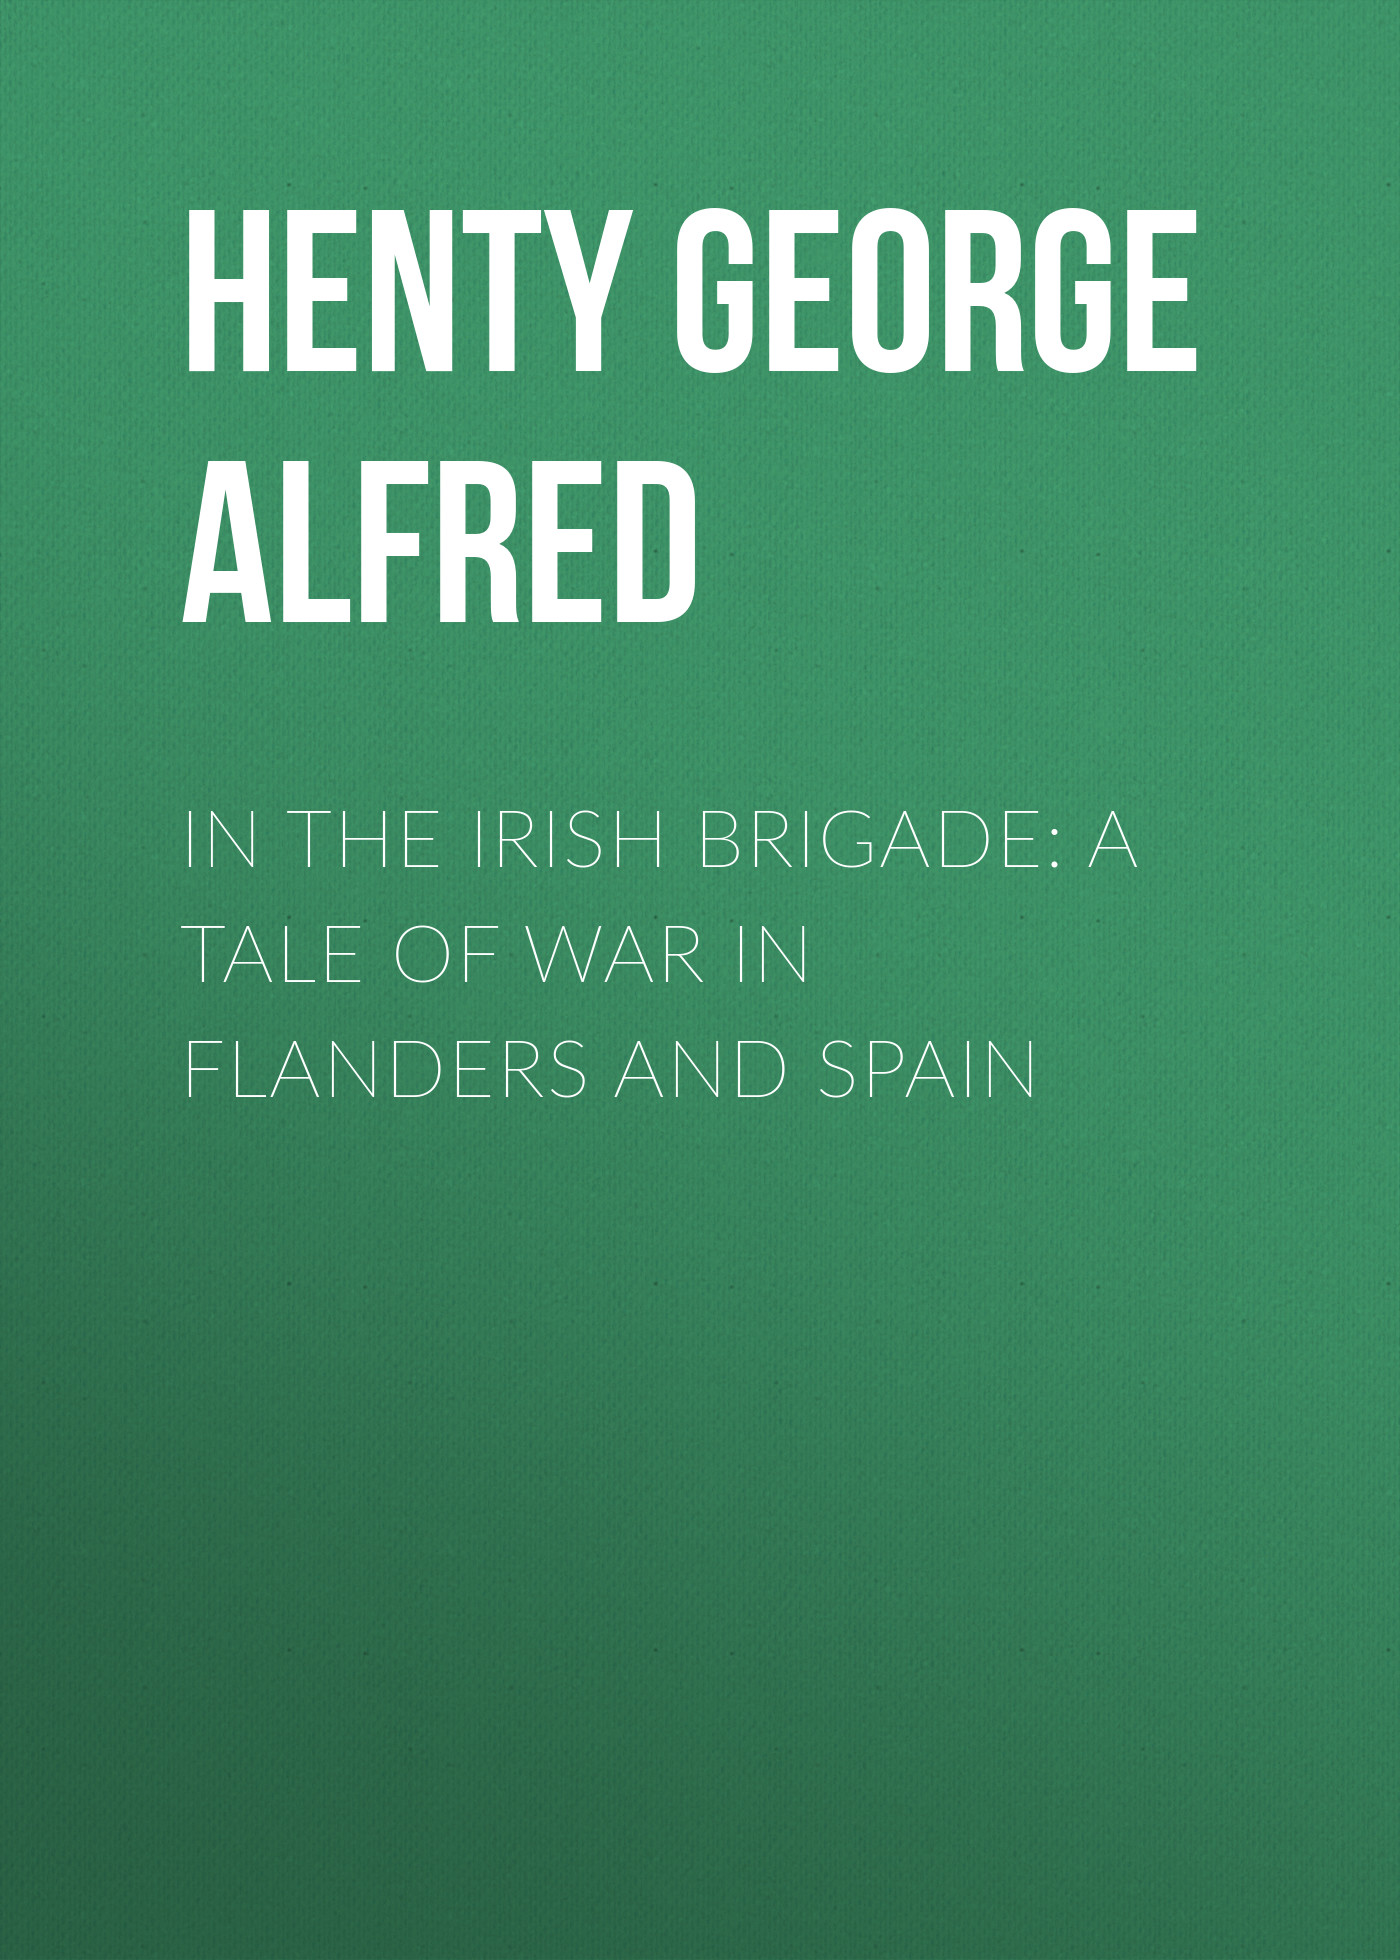 лучшая цена Henty George Alfred In the Irish Brigade: A Tale of War in Flanders and Spain